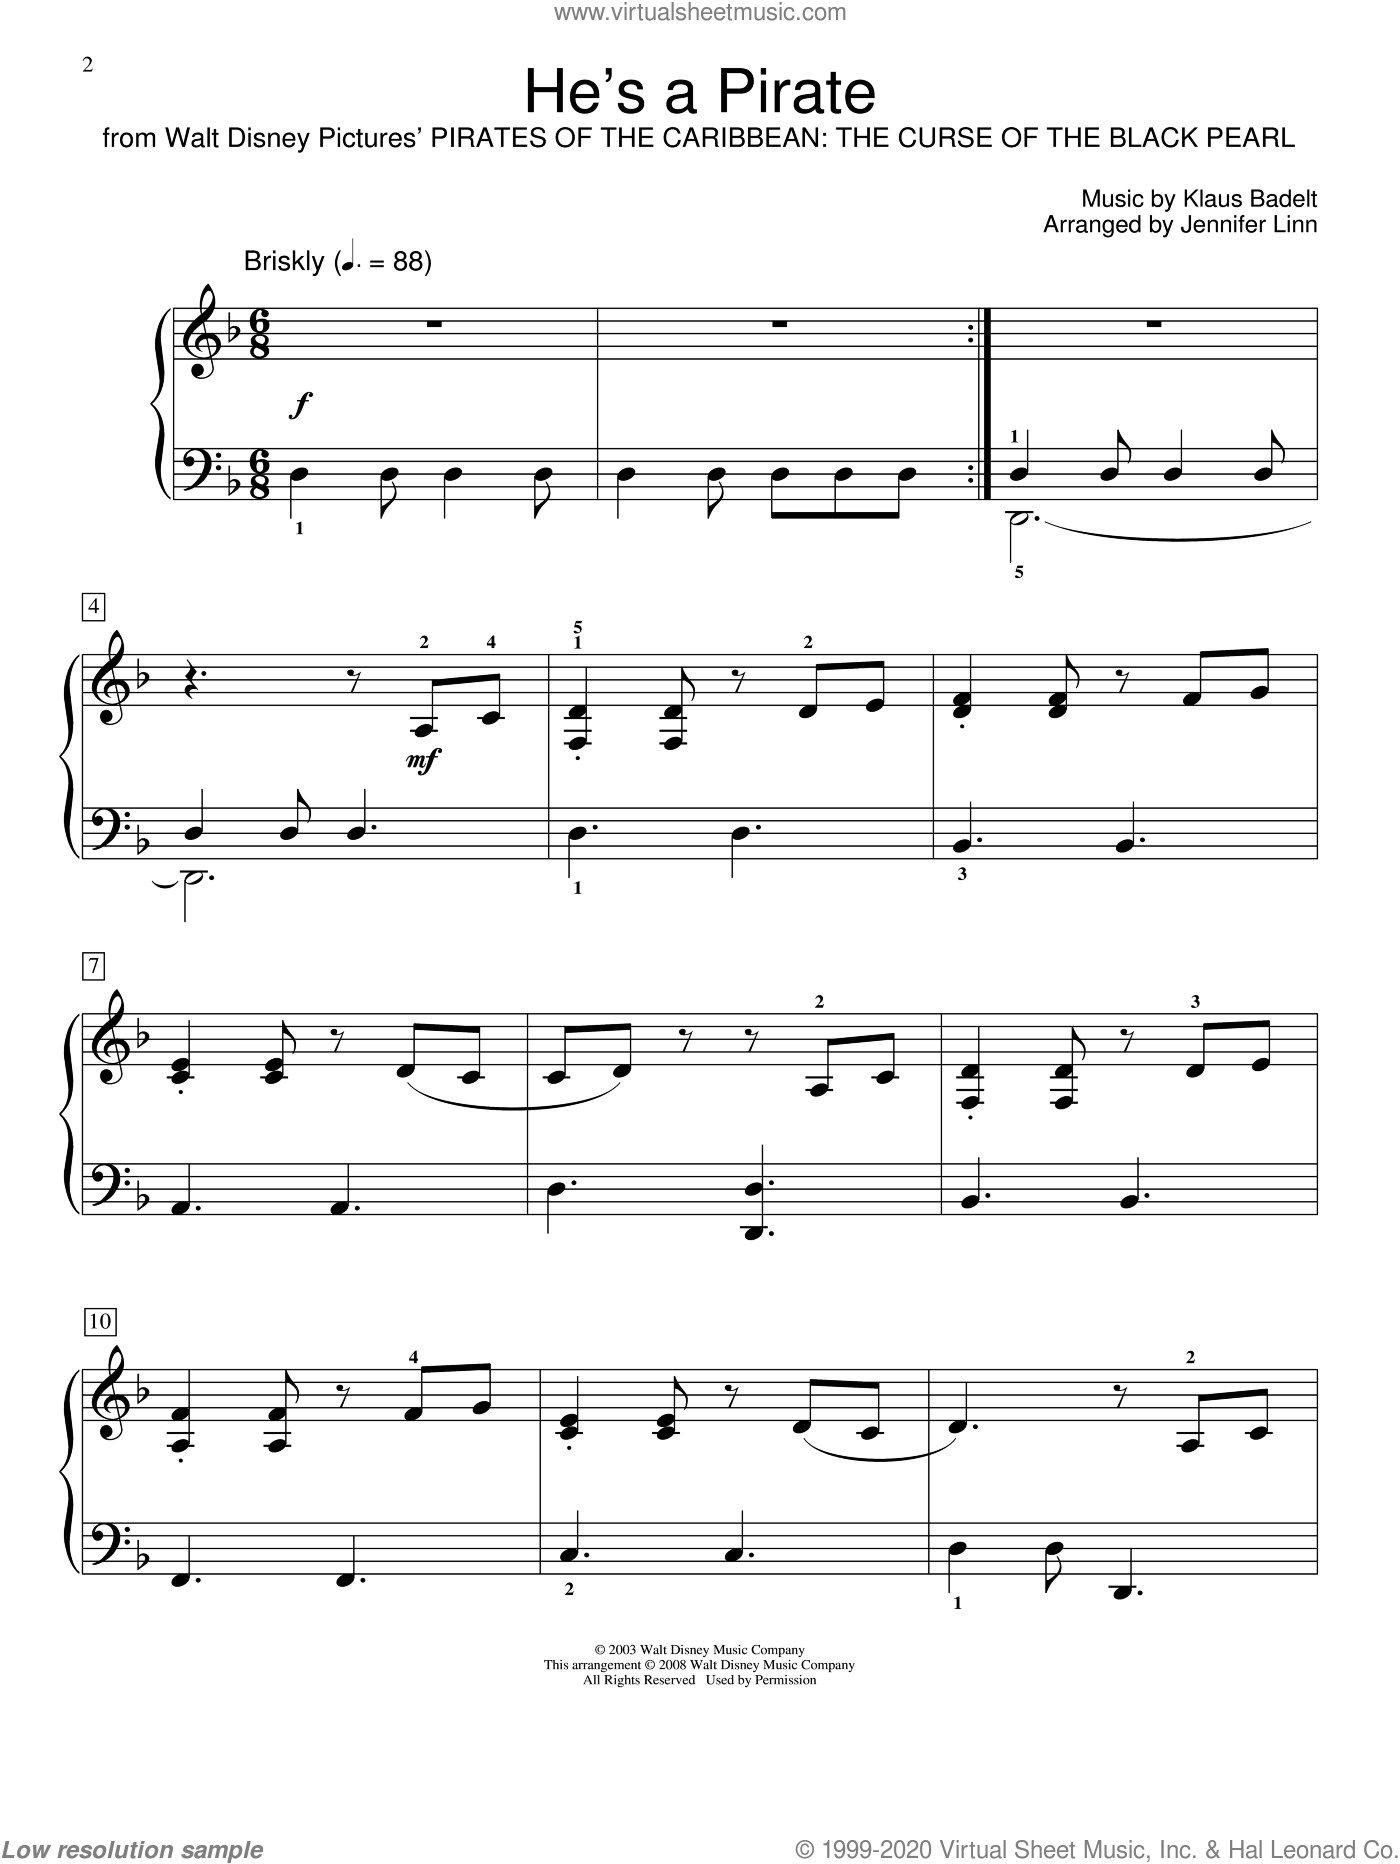 He's A Pirate sheet music for piano solo (elementary) by Klaus Badelt